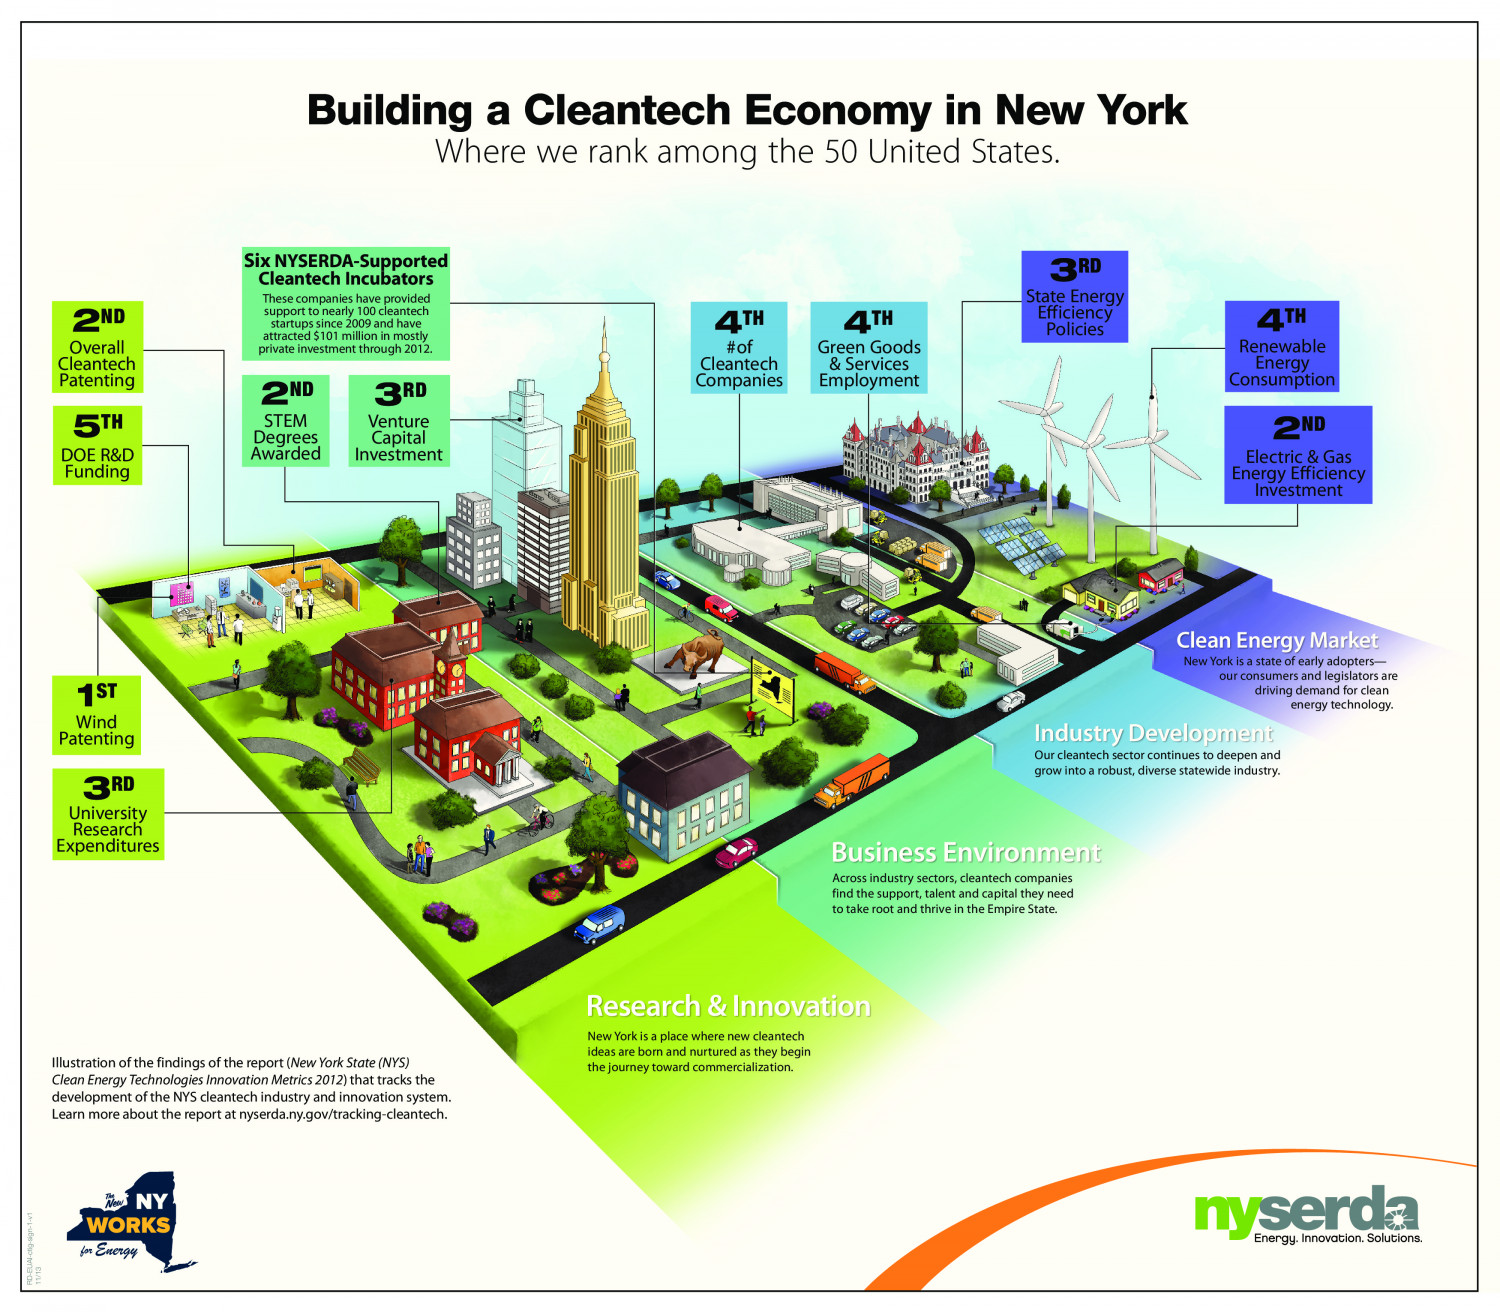 Building a Cleantech Economy in New York Infographic